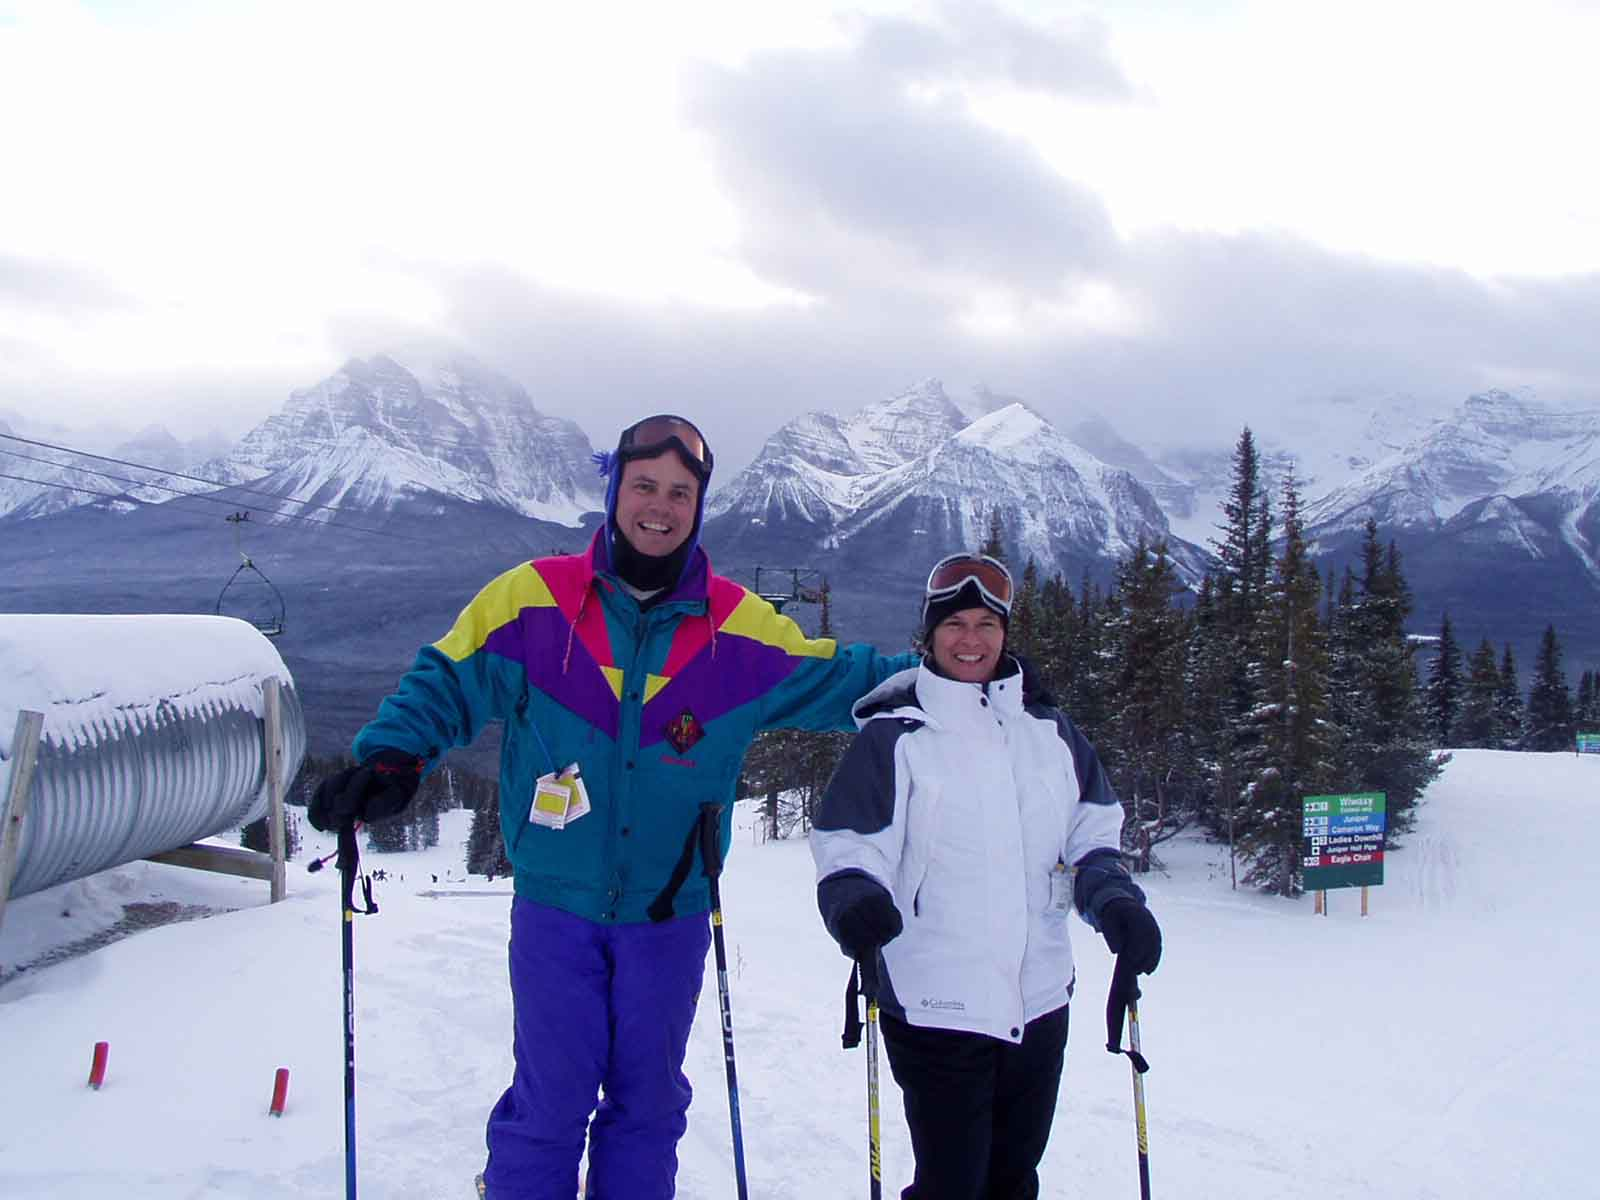 A picture of Jim and Sandra from the top of the Friendly Giant chair at Lake Louise